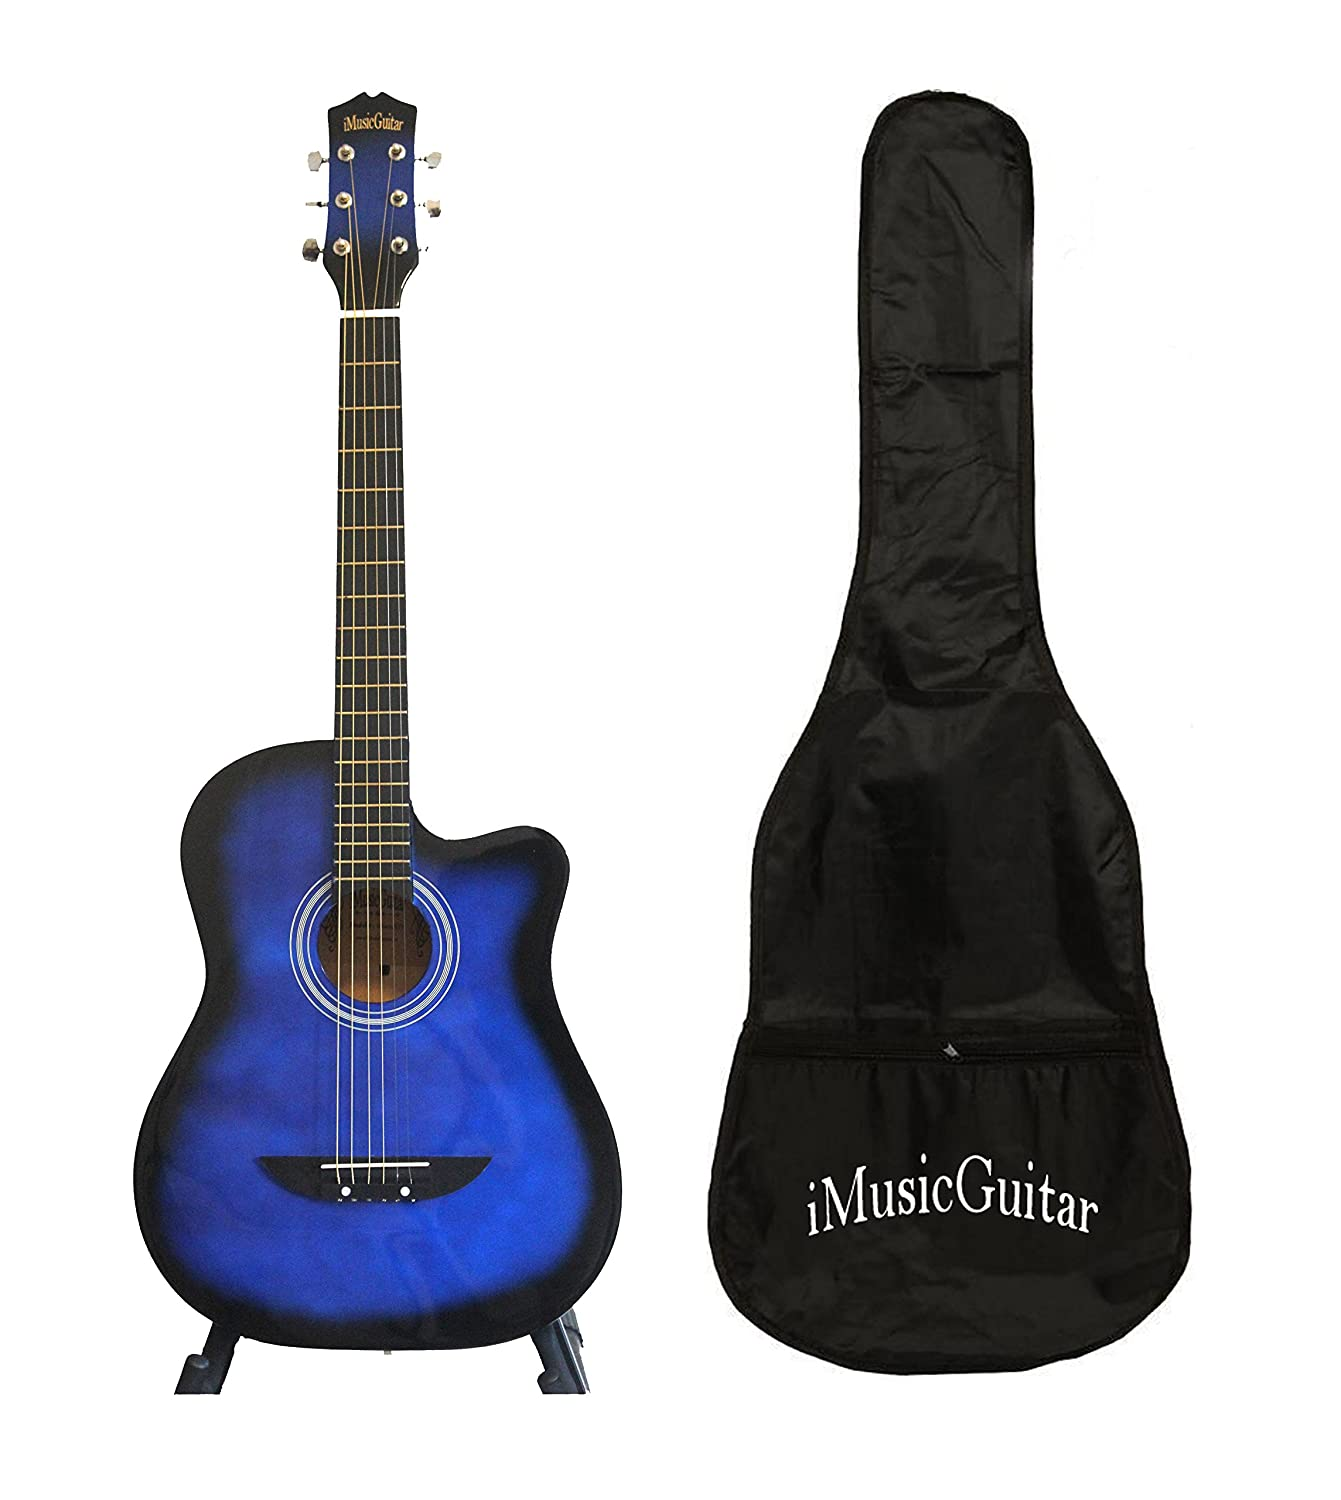 Acoustic Guitar for beginners, children, students with Soft bag iMusic577 Blue iMusicGuitar iMusic575